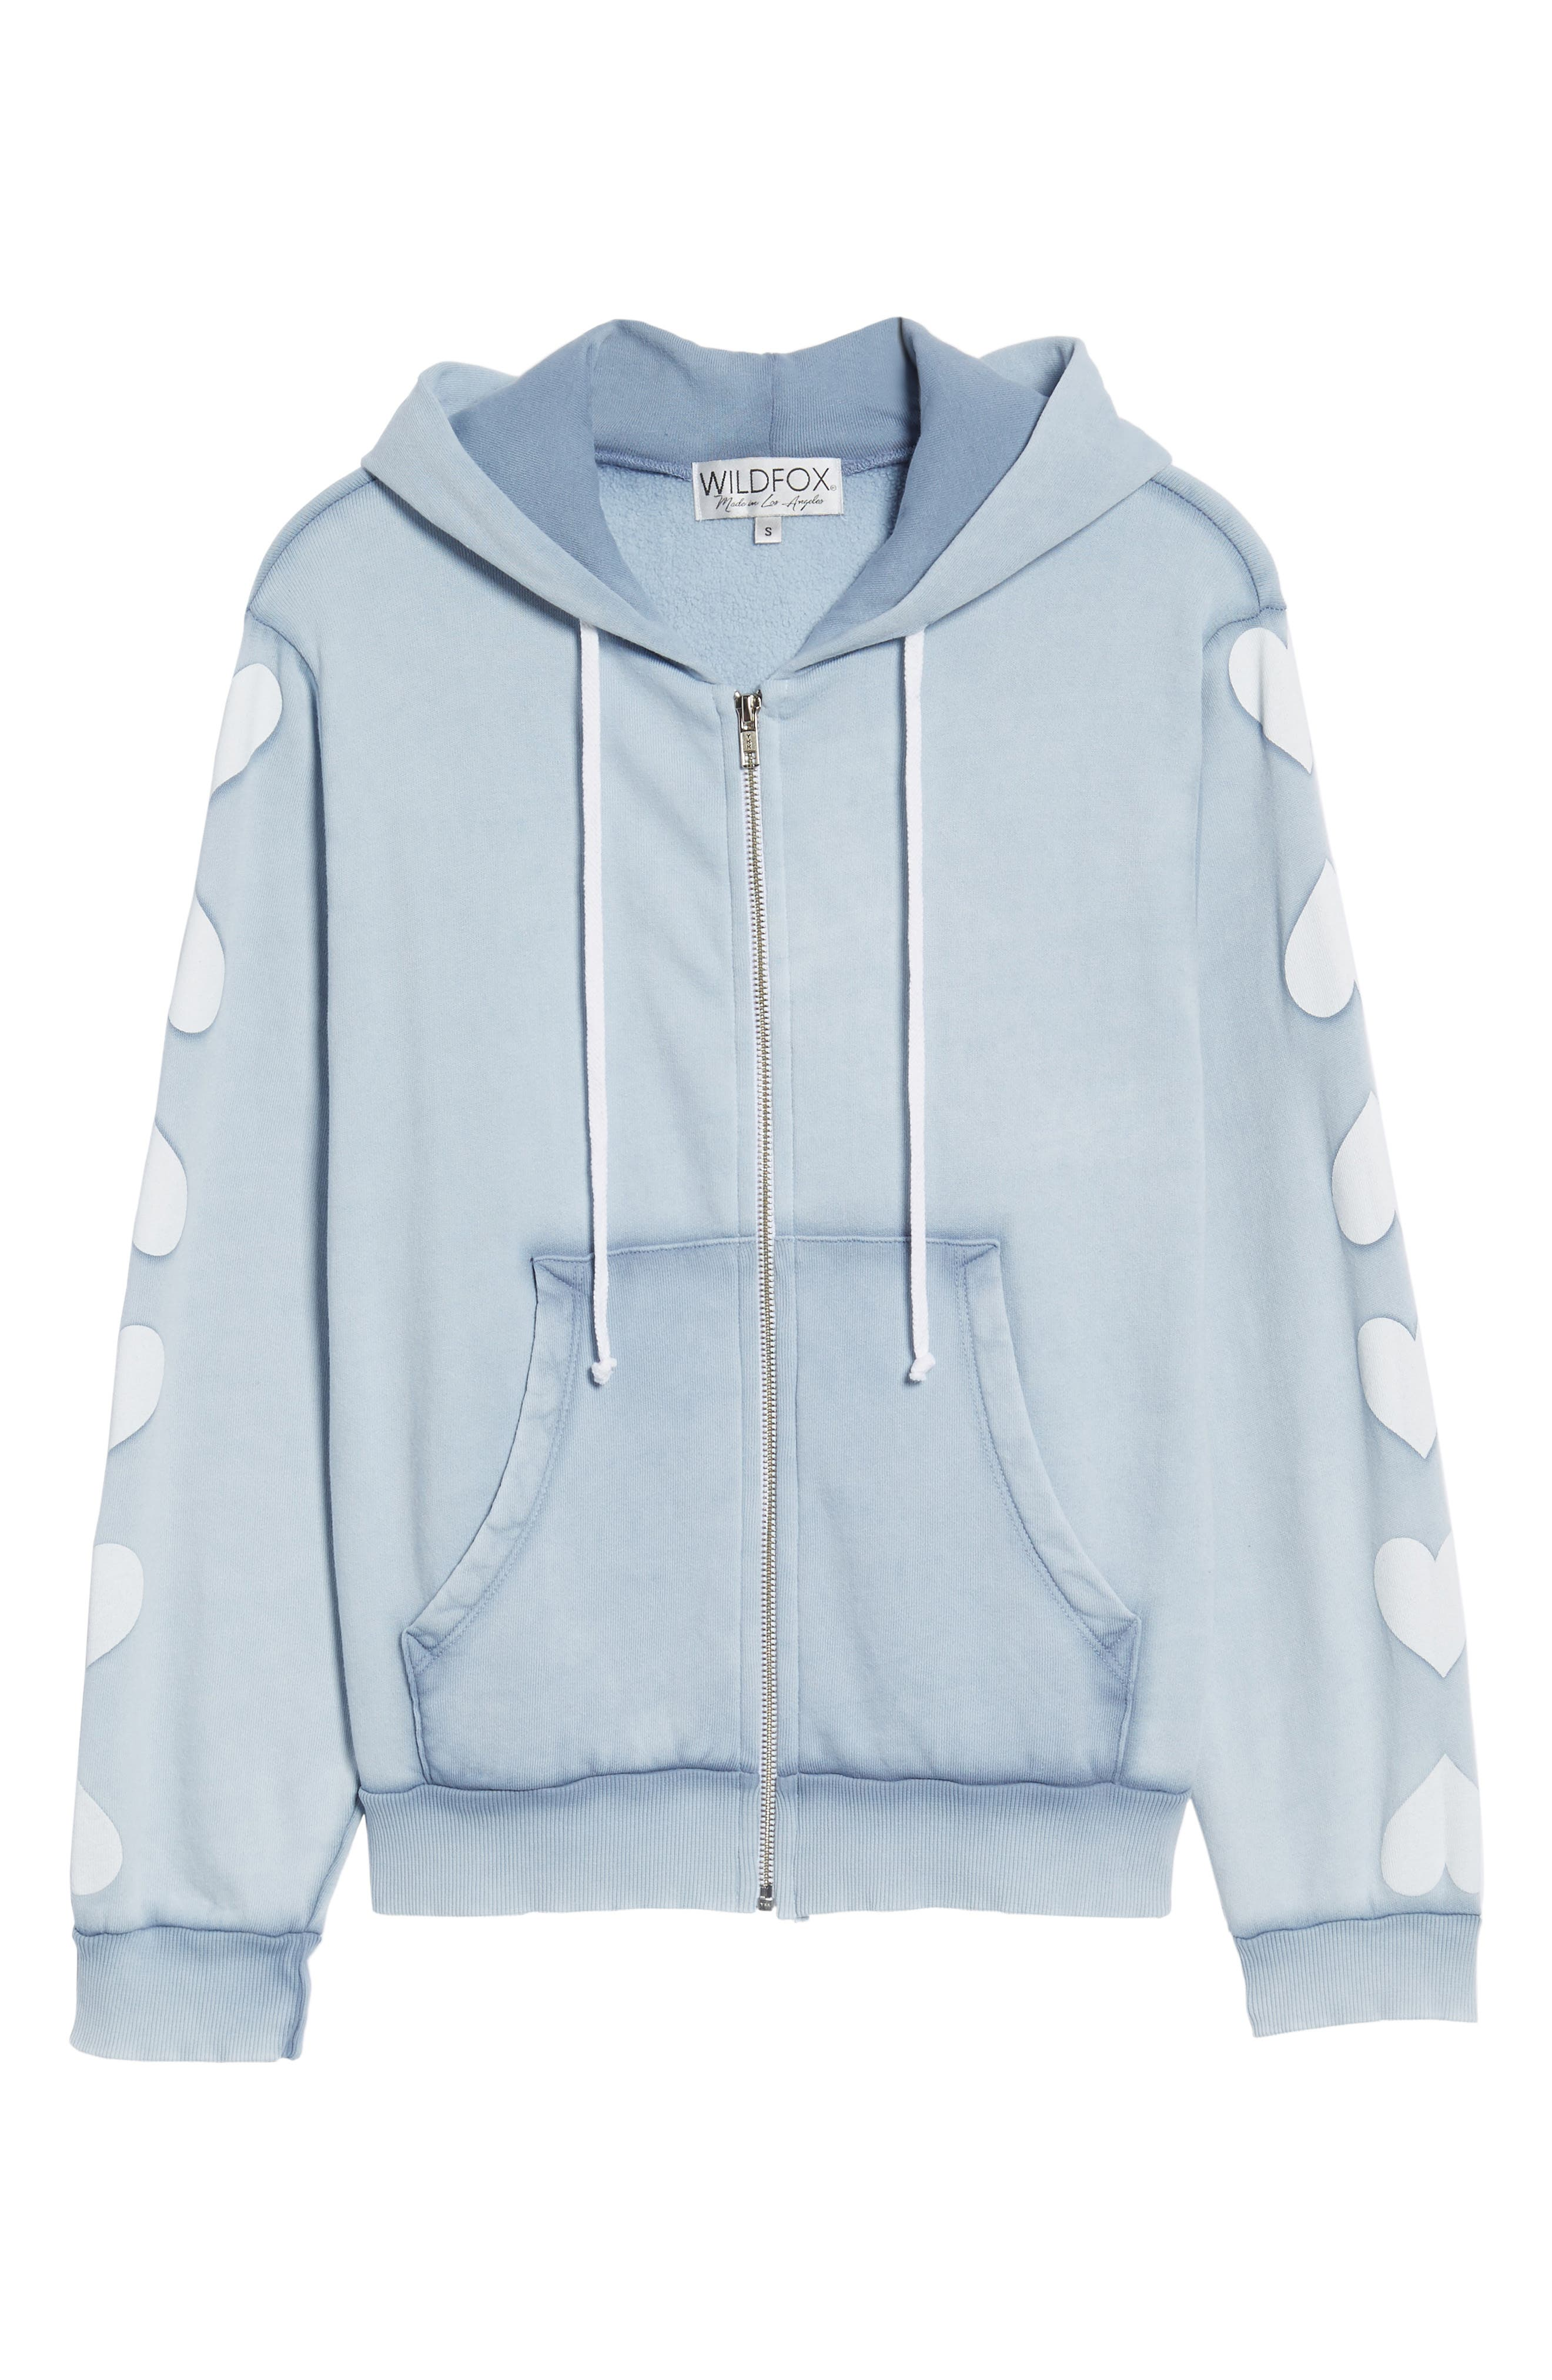 Heart of Hearts Zip Hoodie,                             Alternate thumbnail 6, color,                             Blue Ribbon